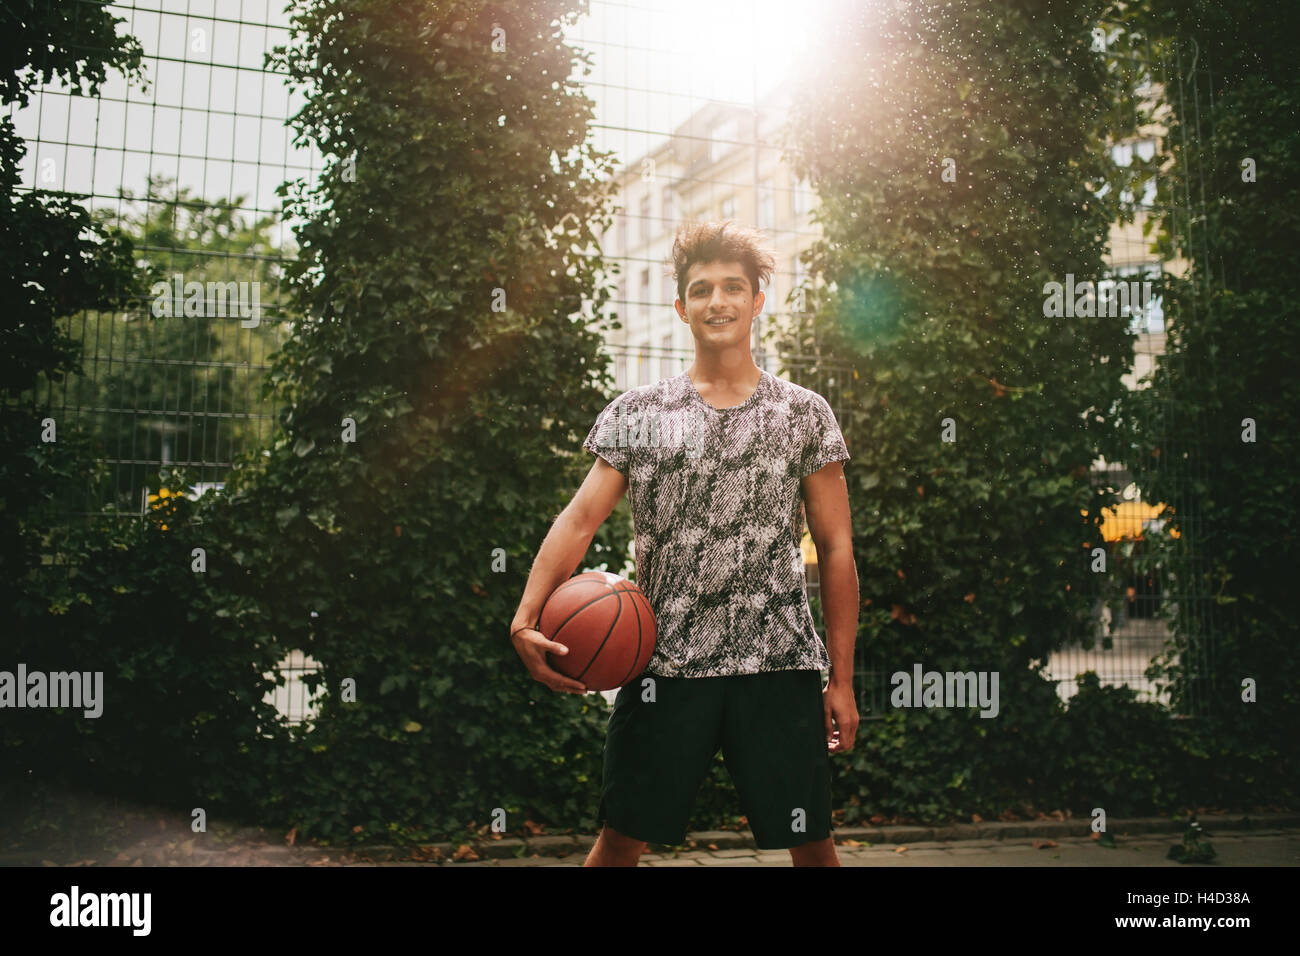 Portrait of young man holding a basketball on outdoor court. Smiling teenage streetball player looking at camera. Stock Photo